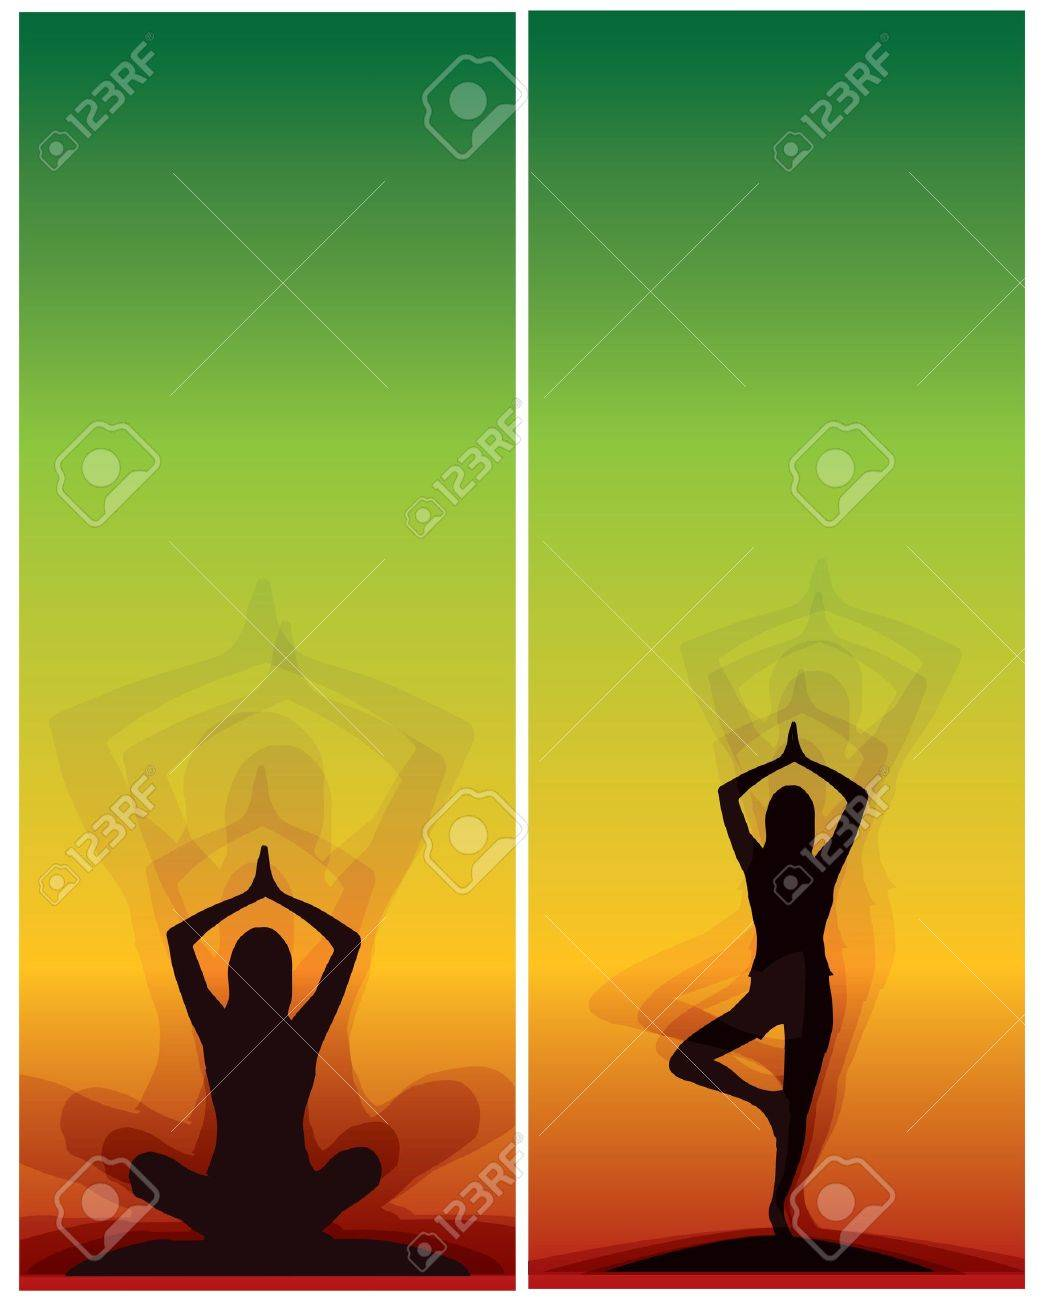 Yoga Meditation Bookmarks Bookmark Banner Royalty Free Cliparts Vectors And Stock Illustration Image 18241237